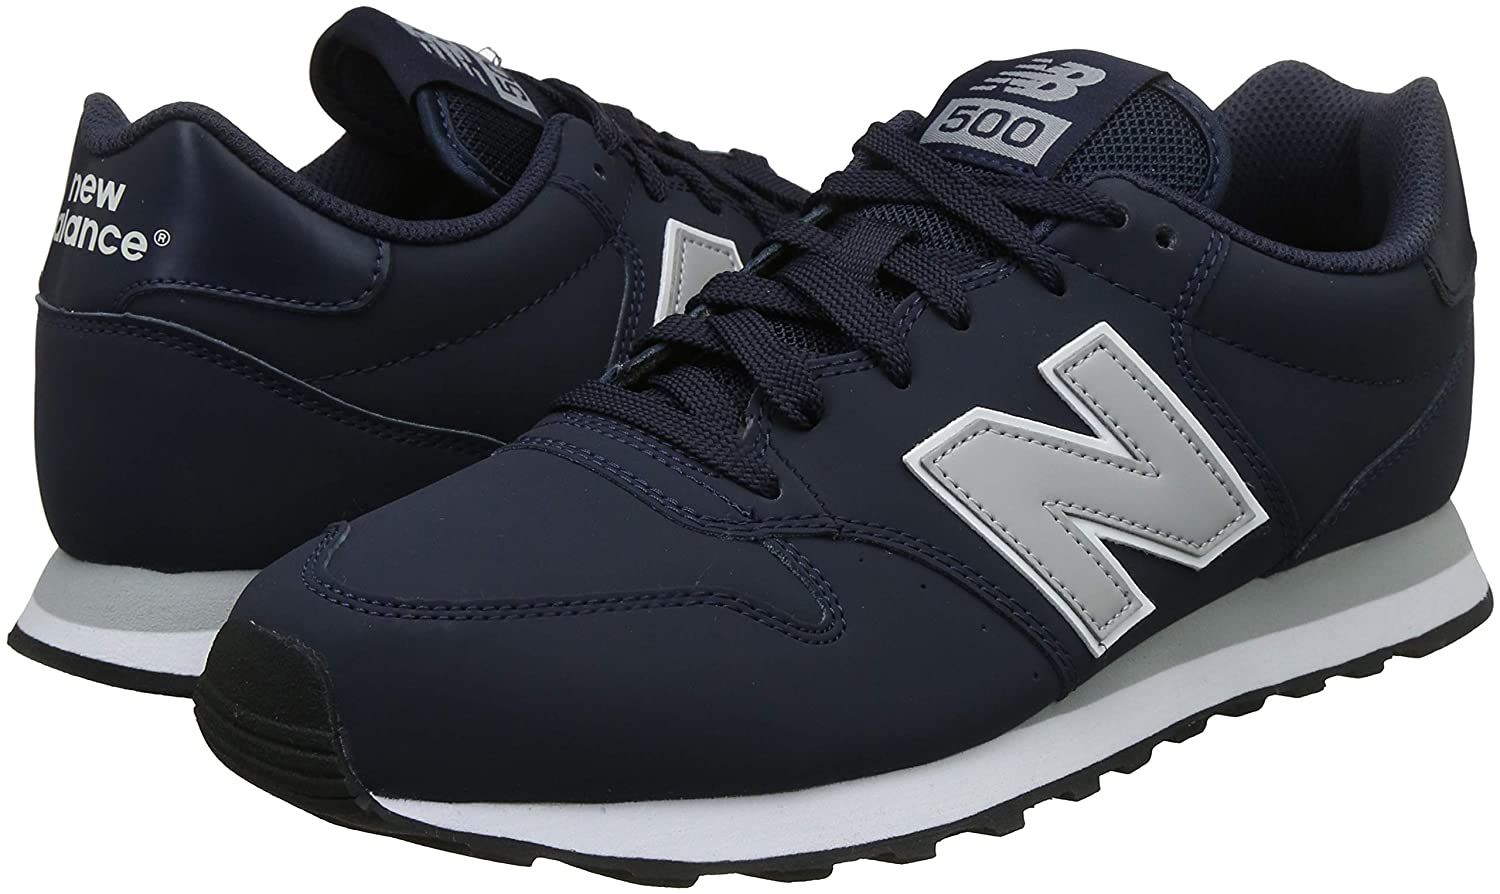 Rechazar Problema biografía  Buy new balance Men's Navy Sneakers-6.5 UK/India (40 EU)(7 US) (GM500BLG)  at Amazon.in